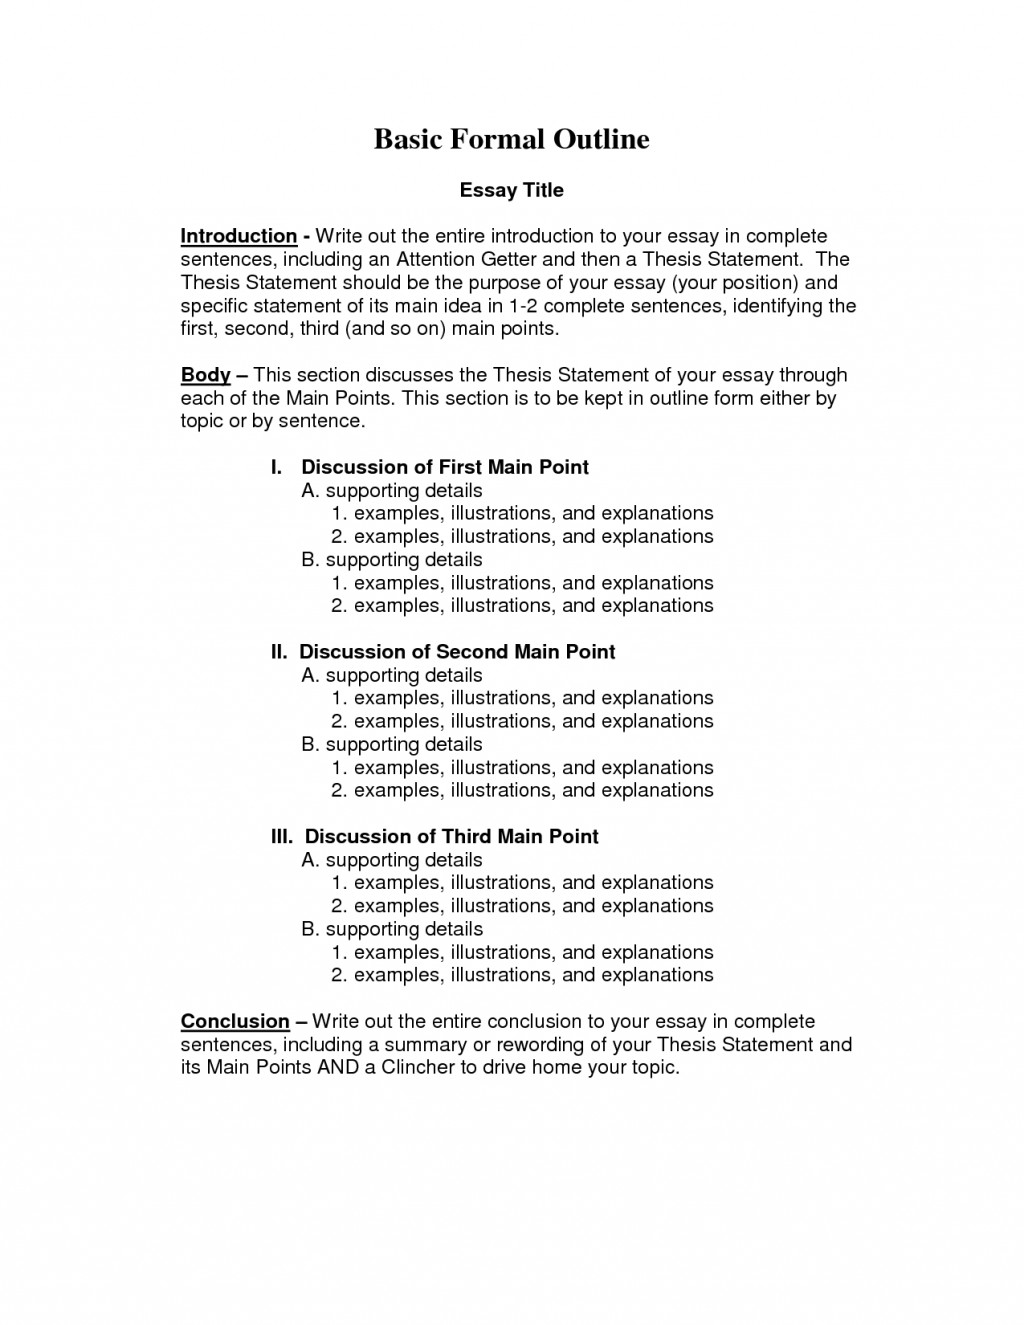 009 Essay Example Apply Texas Examples Formal Introduction Format Researchaper Help Tkpaperpbgo Outline 4 An For College Writing With Argument Good Dreaded B A 2017 C Large